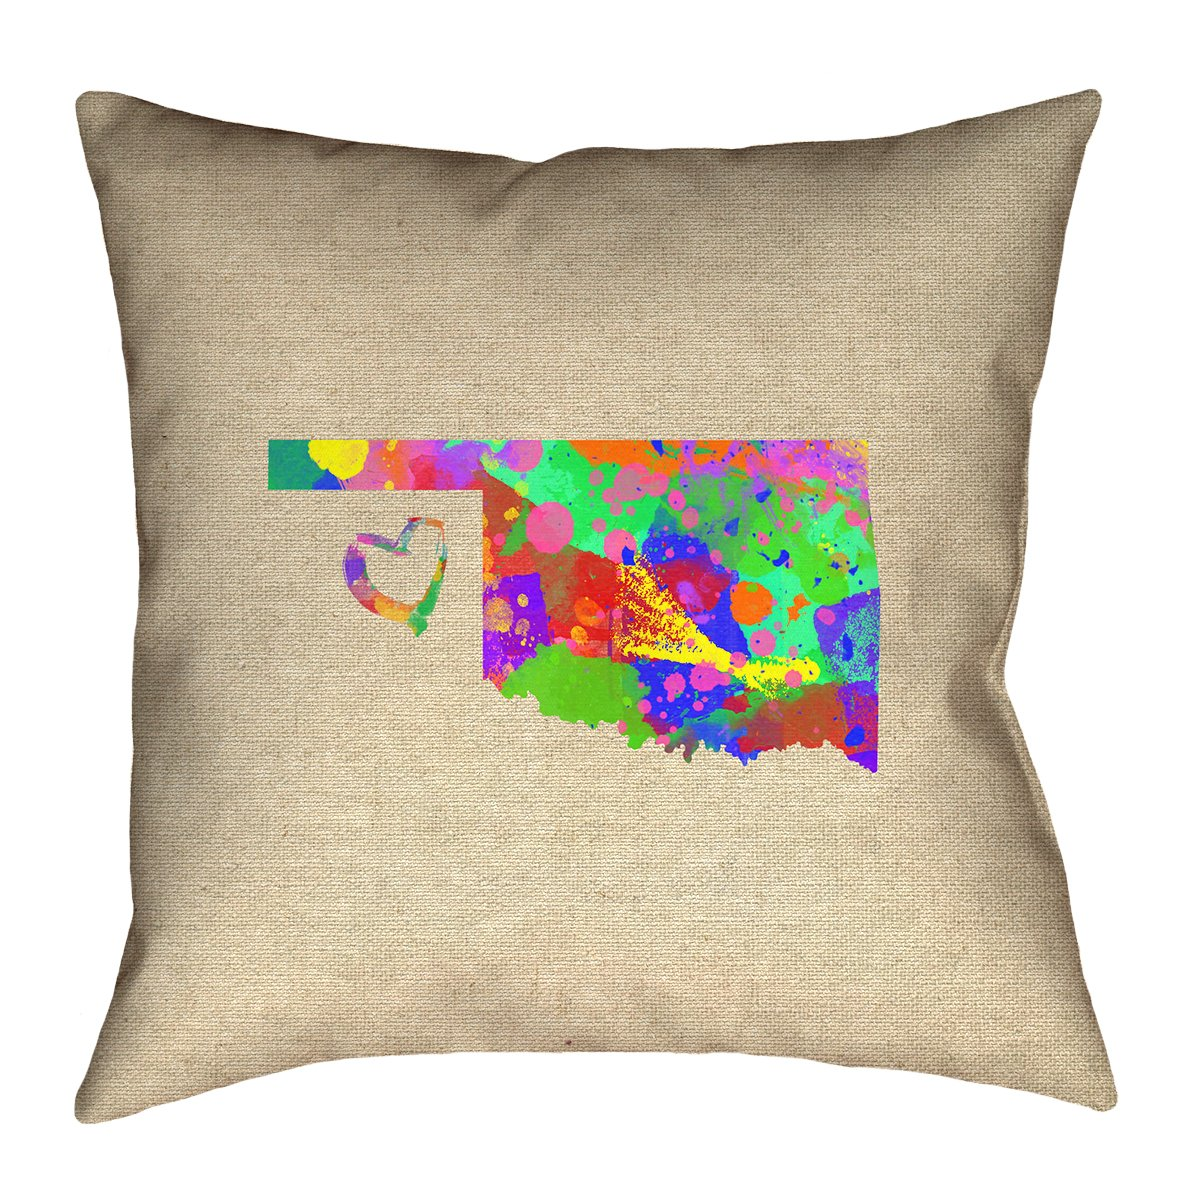 ArtVerse Katelyn Smith 28 x 28 Floor Double Sided Print with Concealed Zipper /& Insert Oklahoma Love Watercolor Pillow